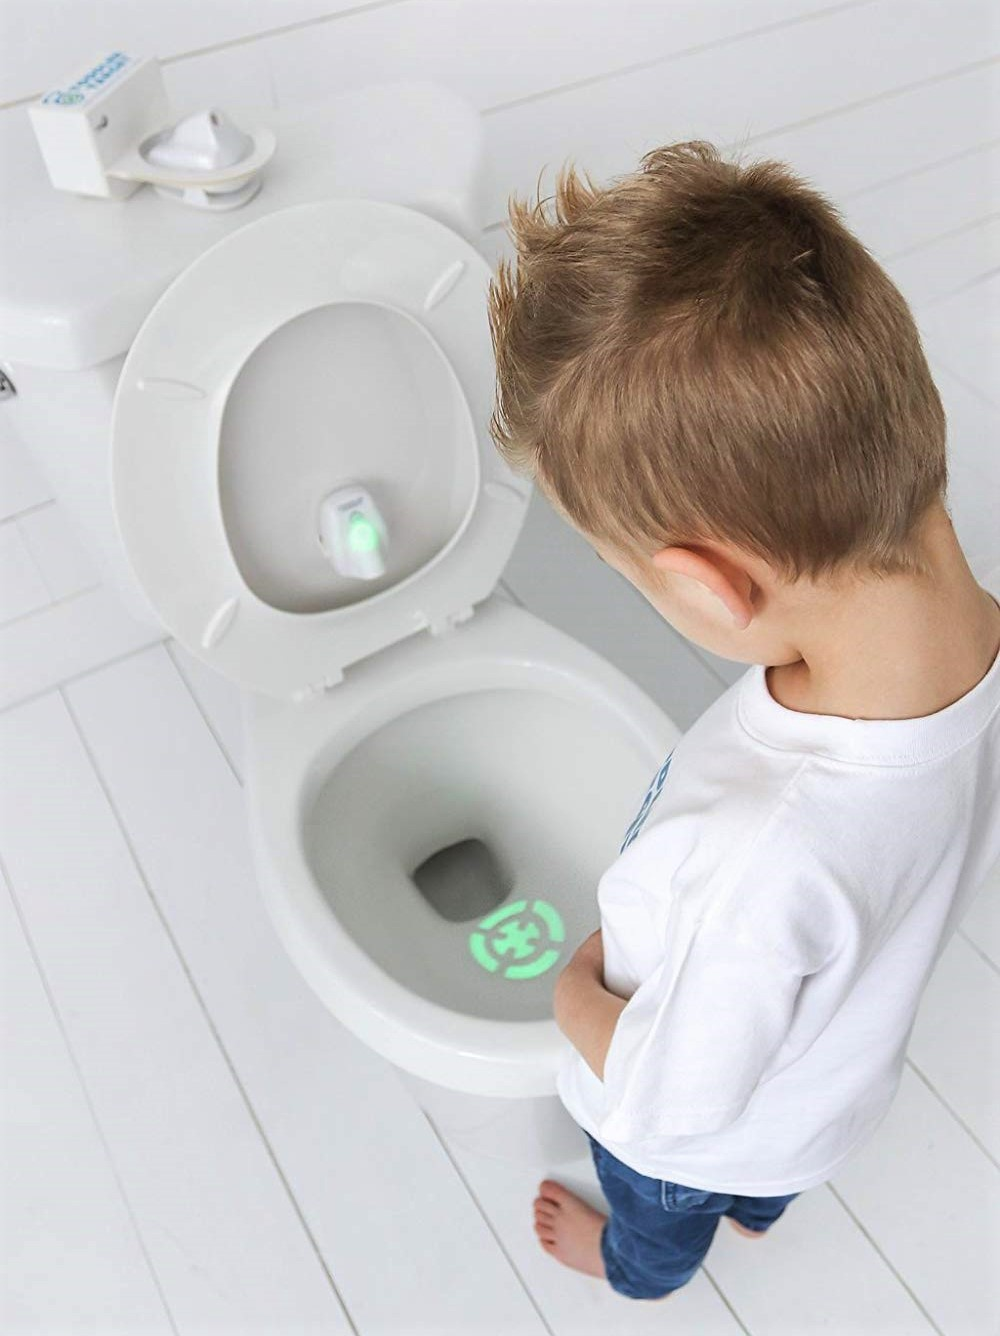 The Toddler Target Toilet Light Aims to Make Potty Training Fun